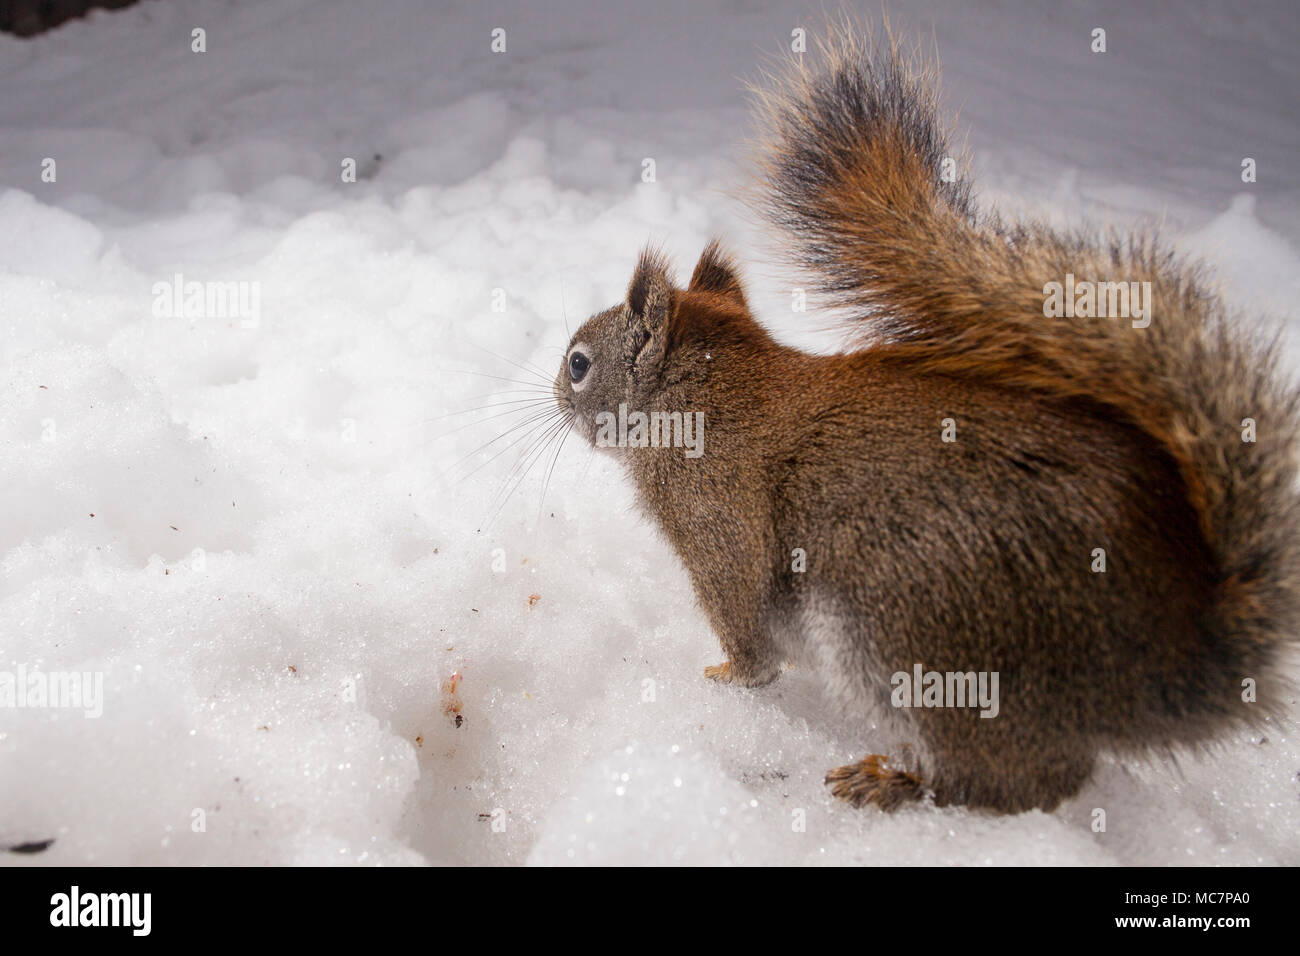 MAYNOOTH, ONTARIO, CANADA - April 13, 2018: A red squirrel (Tamiasciurus hudsonicus), part of the Sciuridae family forages for food.  ( Ryan Carter ) - Stock Image